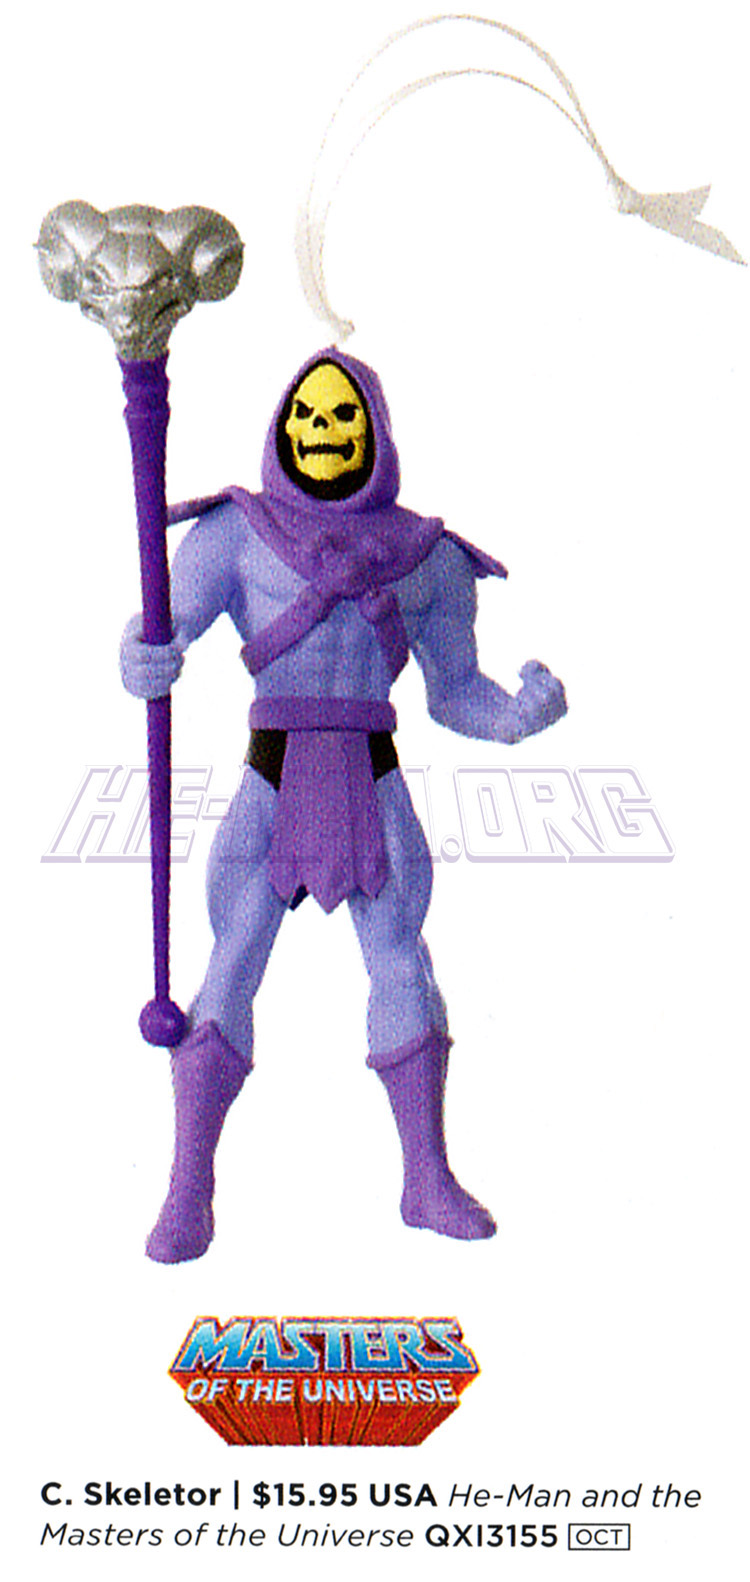 He-Man.org > News > Another look at the 2017 Skeletor Keepsake ...